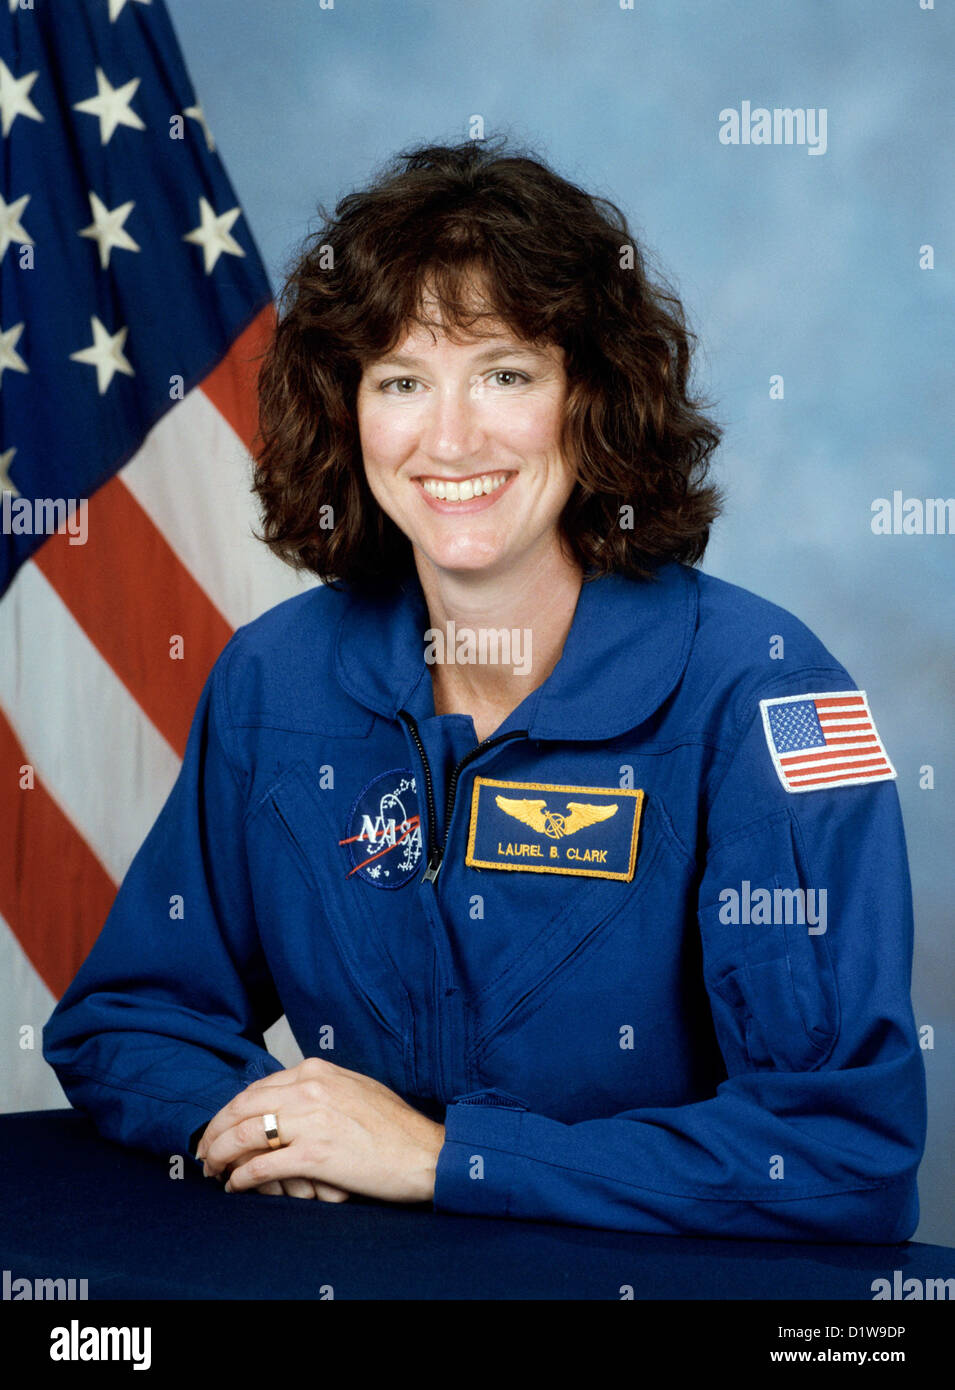 Laurel Clark, American astronaut who died during the failed re-entry of Space Shuttle Columbia. - Stock Image